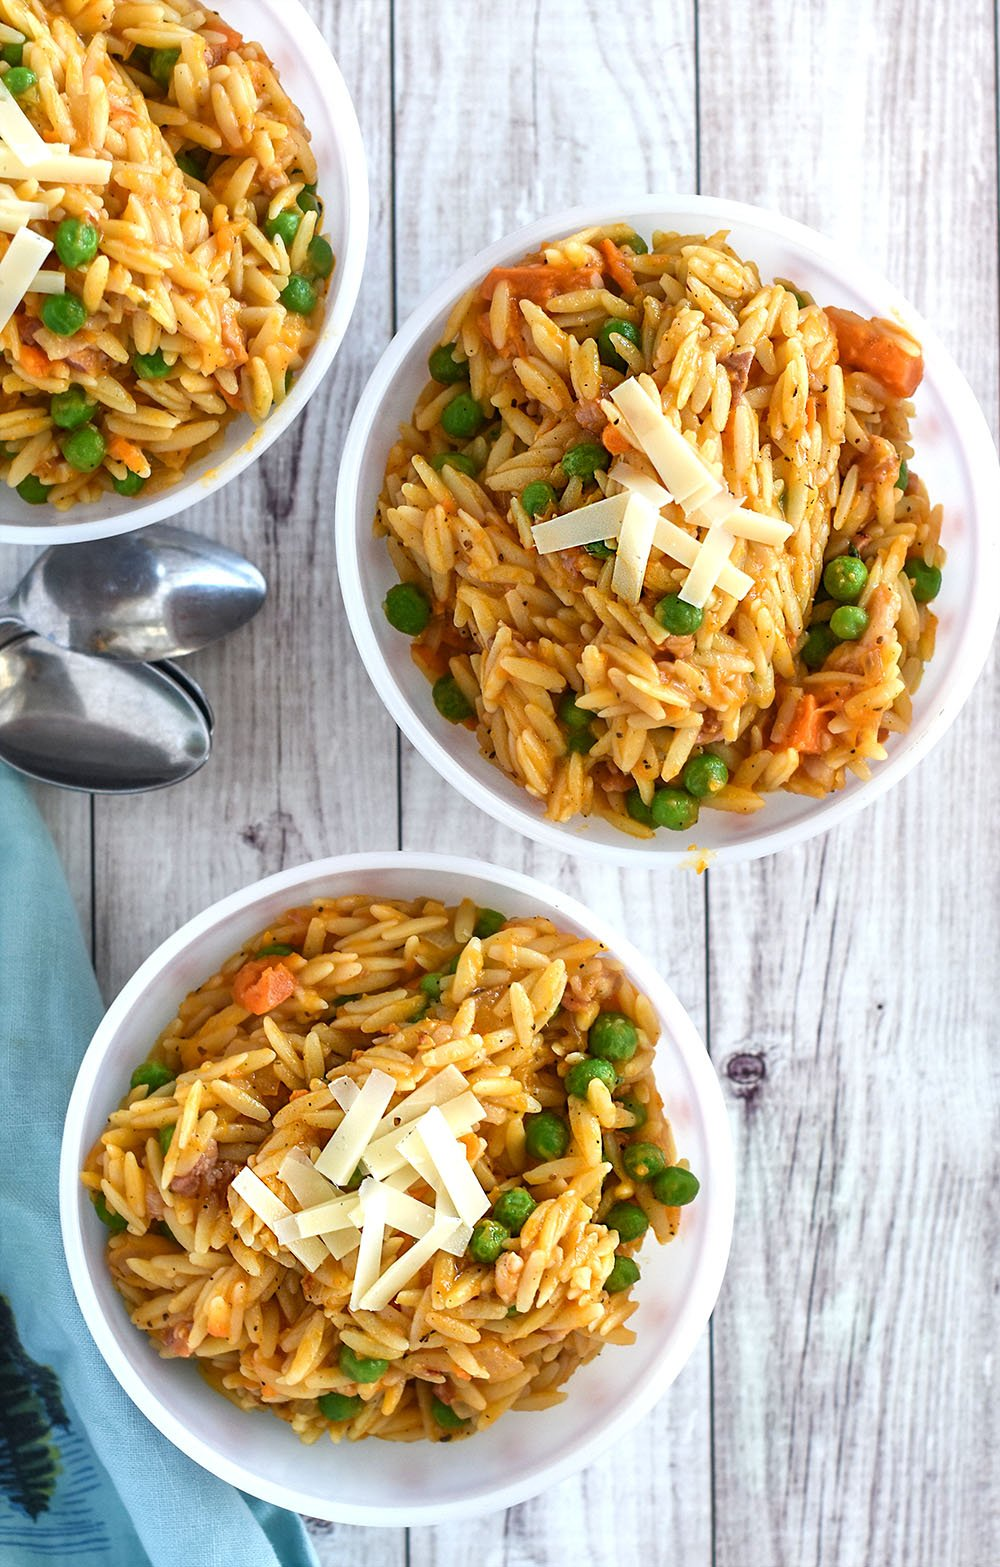 Bowls of sweet potato orzo with peas.